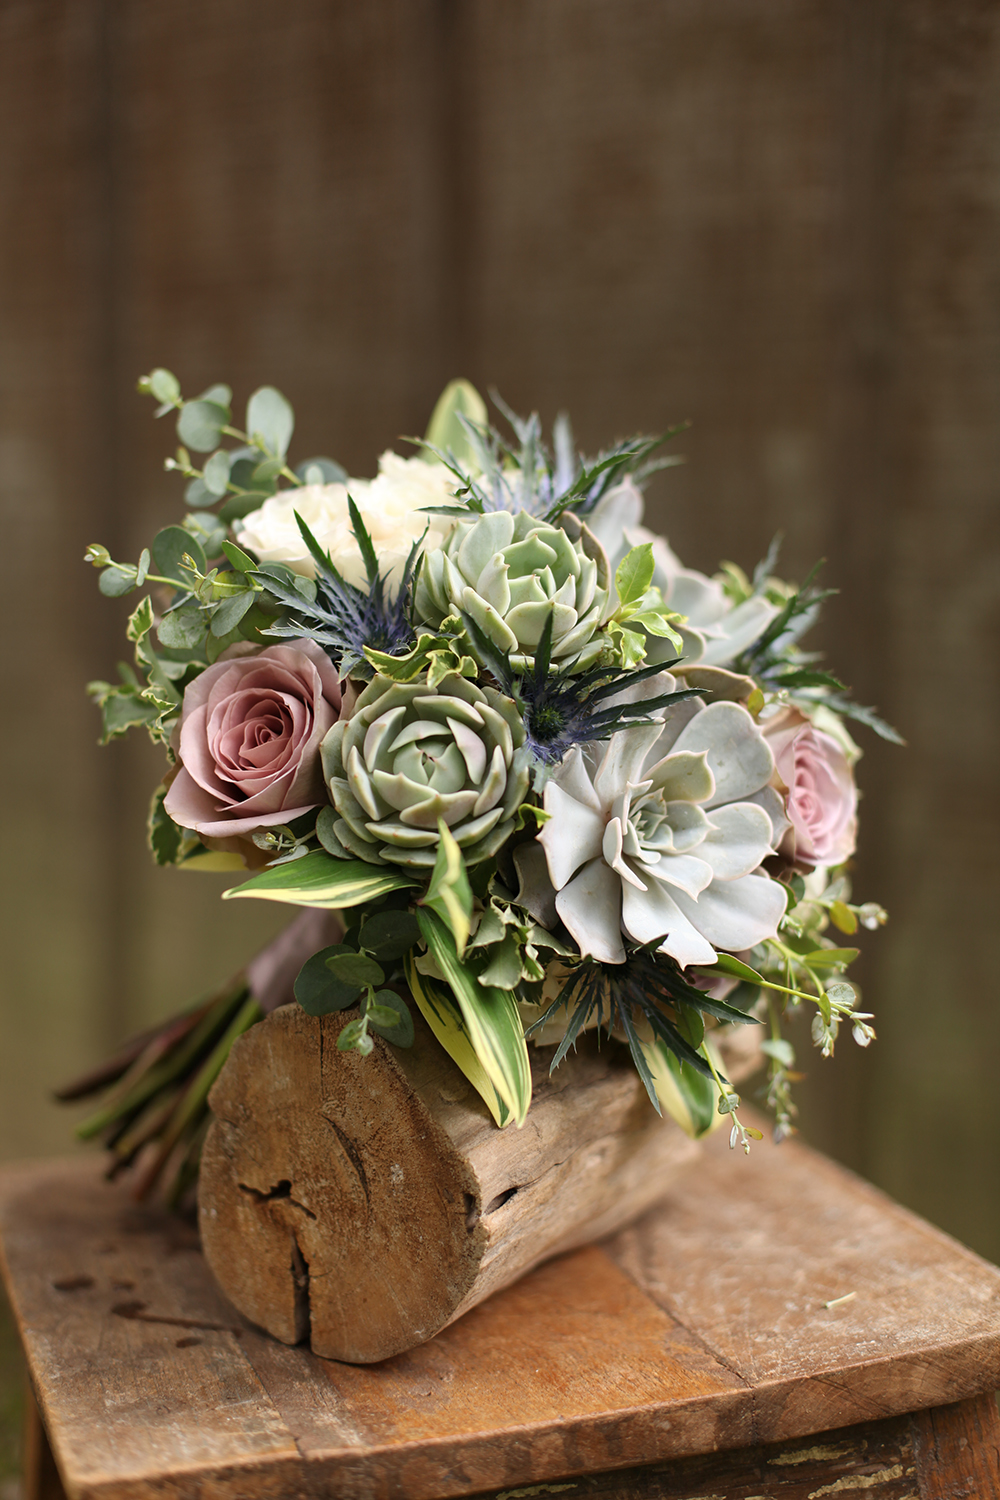 bridesmaid bouquet by wedding florist Floral Verde LLC in Cincinnati, Ohio; with succulents, Amnesia roses, Echeveria 'Lilacina', Echeveria 'Lola', thistle, White Majolica spray roses, gunnii eucalyptus, mini variegated pittosporum and variegated Solomon's Seal.